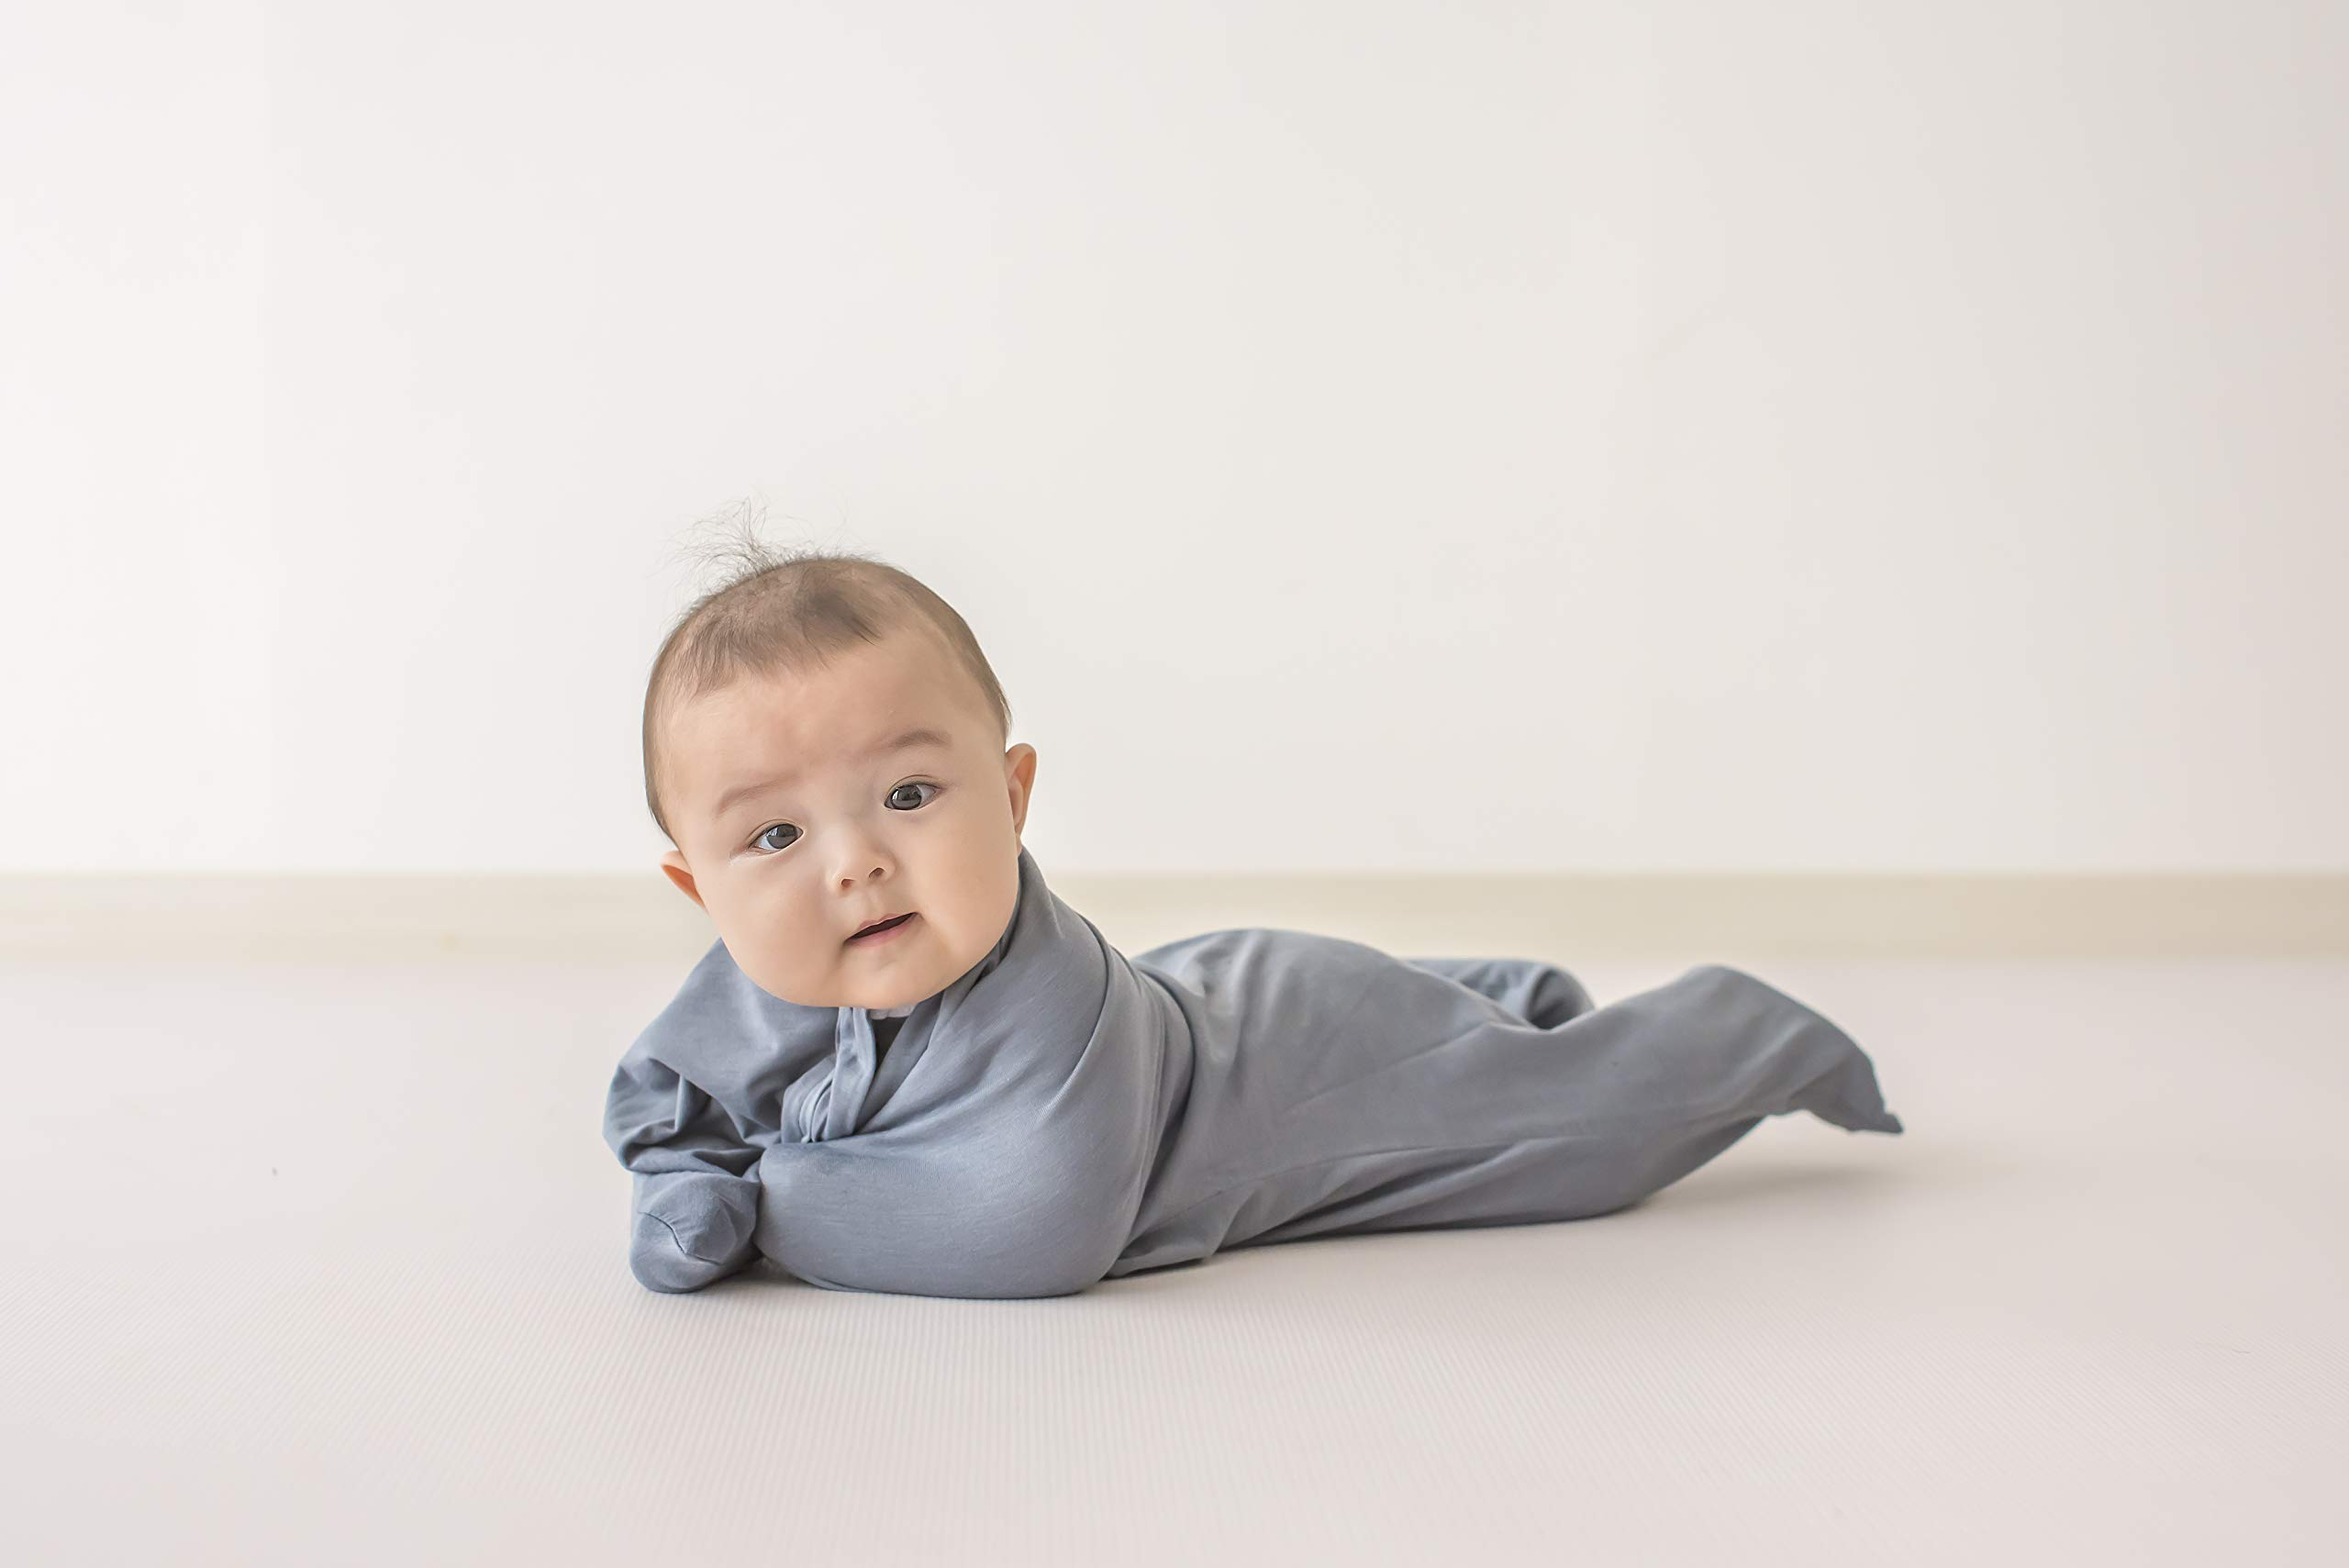 SleepingBaby Classic Zipadee-Zip Swaddle Transition Baby Swaddle Blanket with Zipper, Comforting Cozy Baby Swaddle Wrap and Baby Sleep Sack (Small 4-8 Months | 12-19 lbs, 25-29 inches| Classic Gray) by SleepingBaby